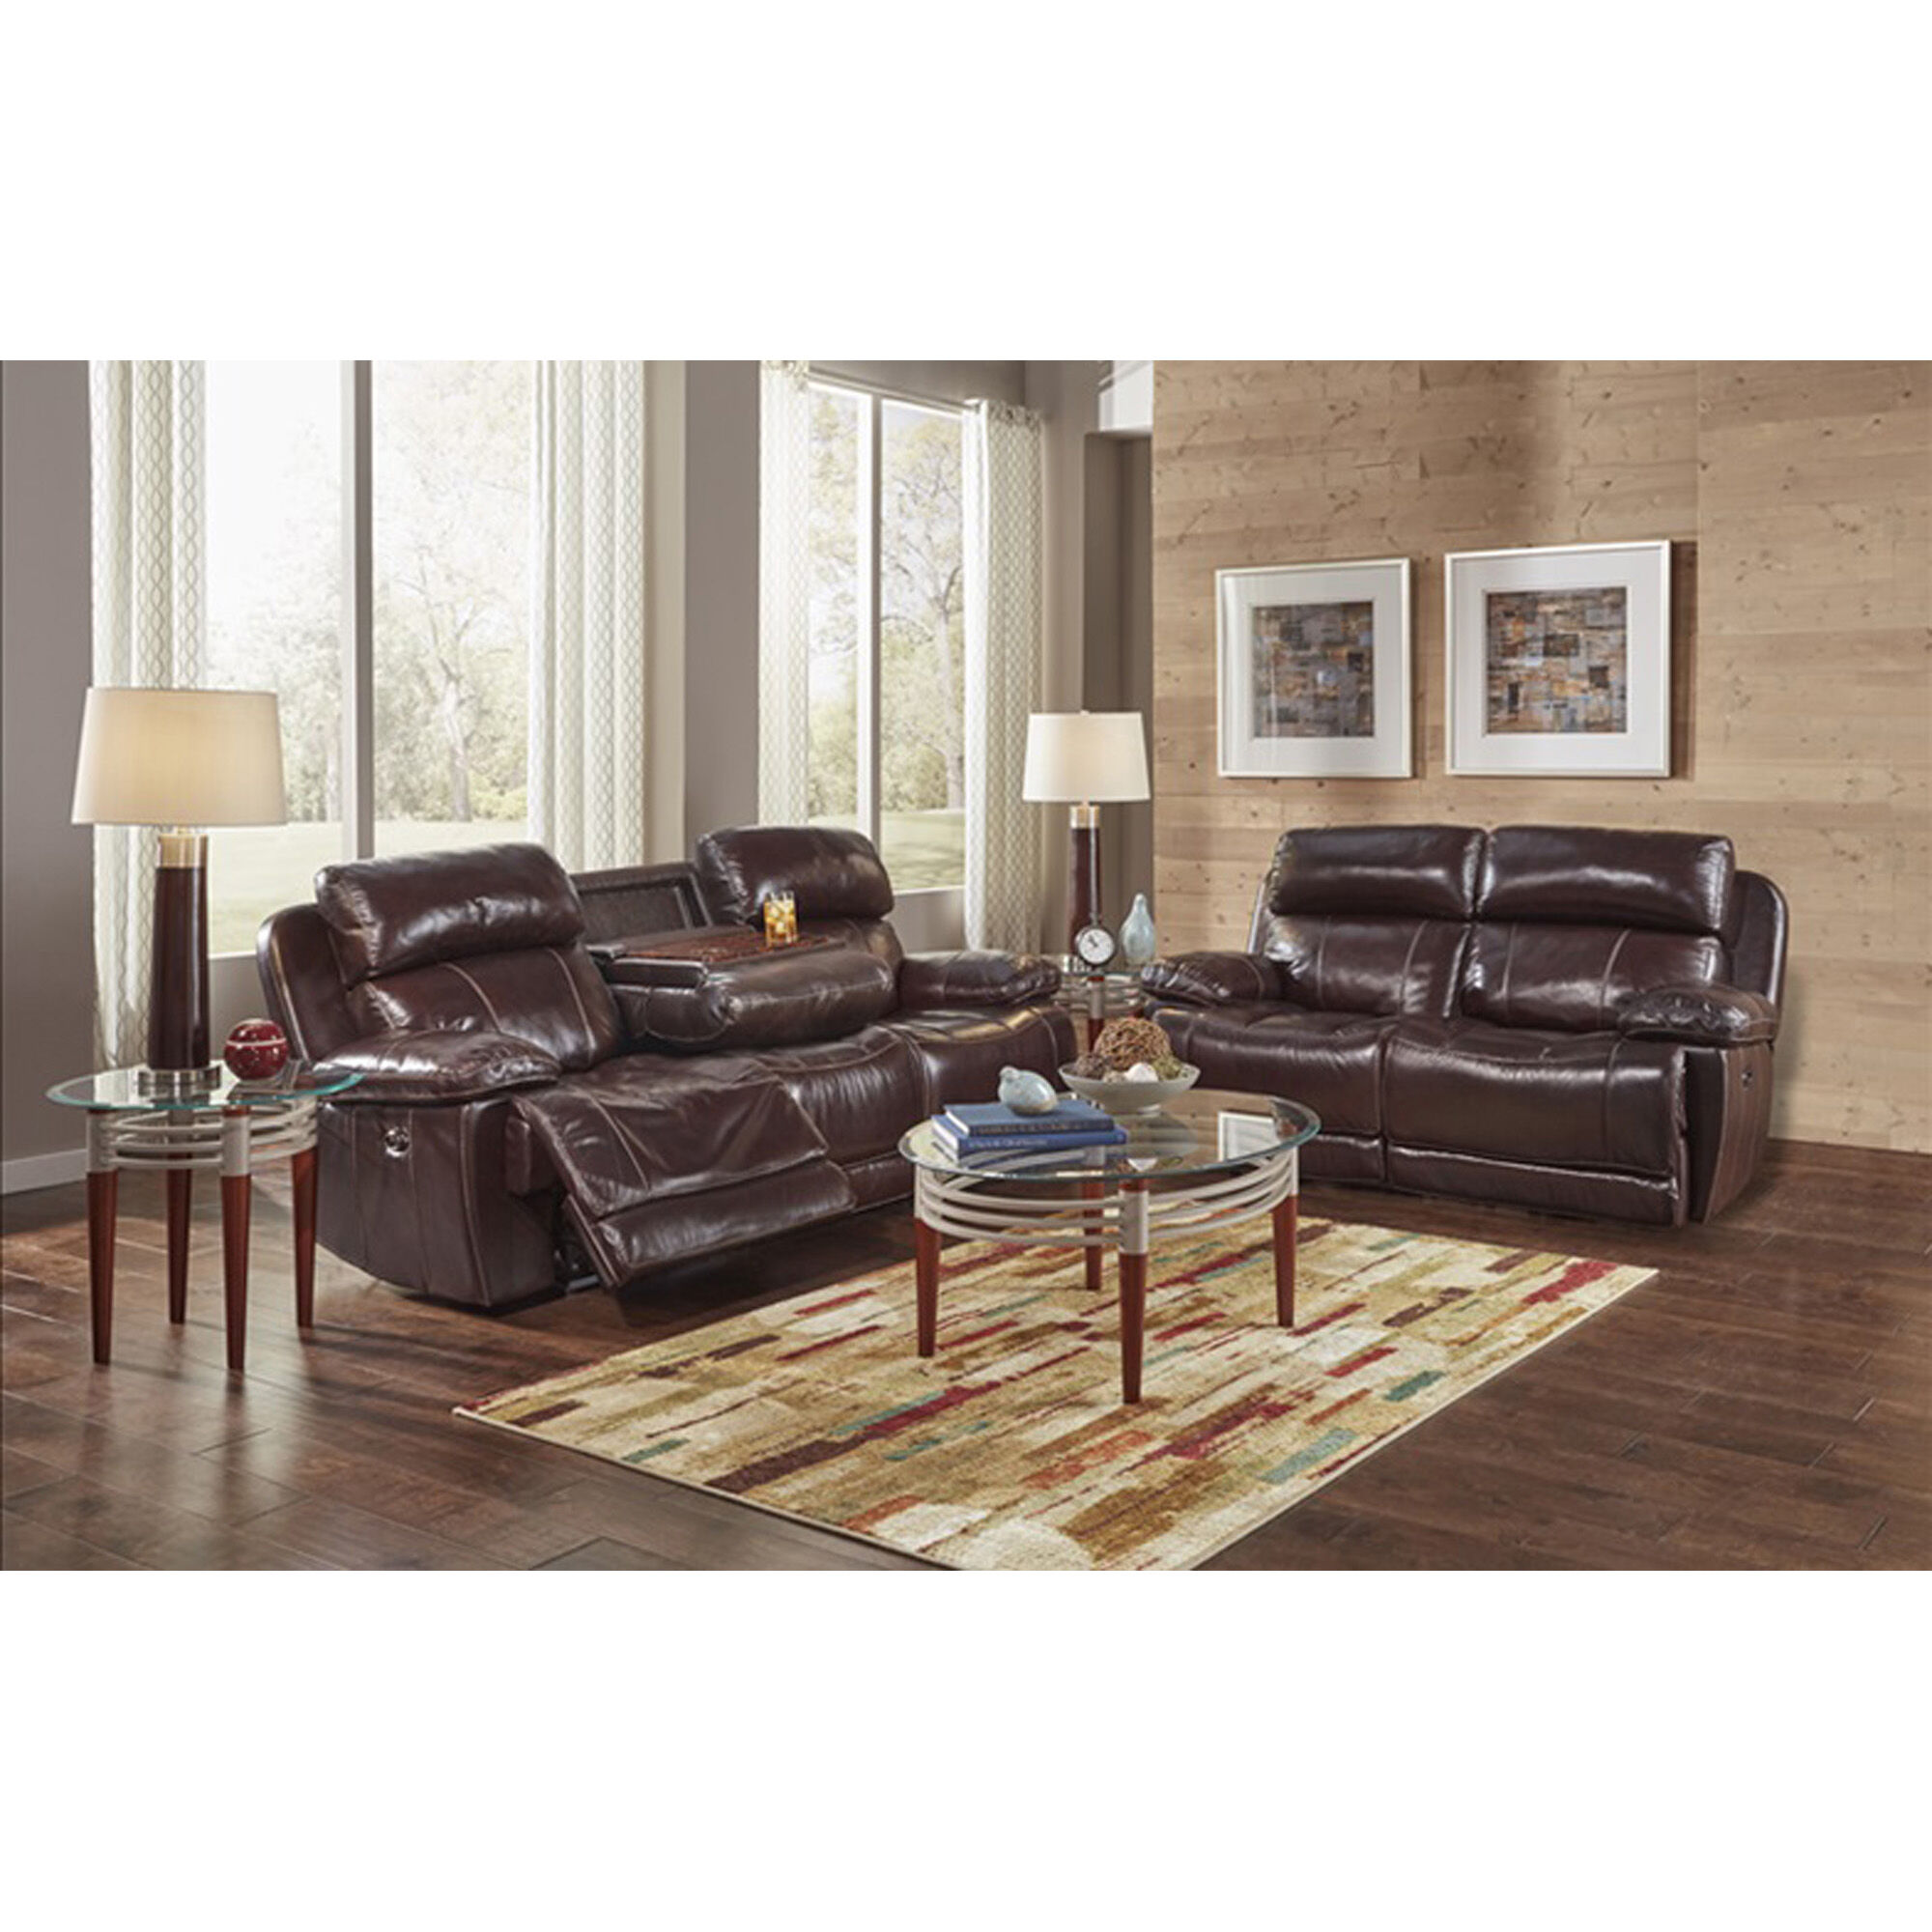 Living room black furniture Modern 2piece James Reclining Living Room Collection Aarons Rent To Own Loveseats Sofas And Couches Aarons